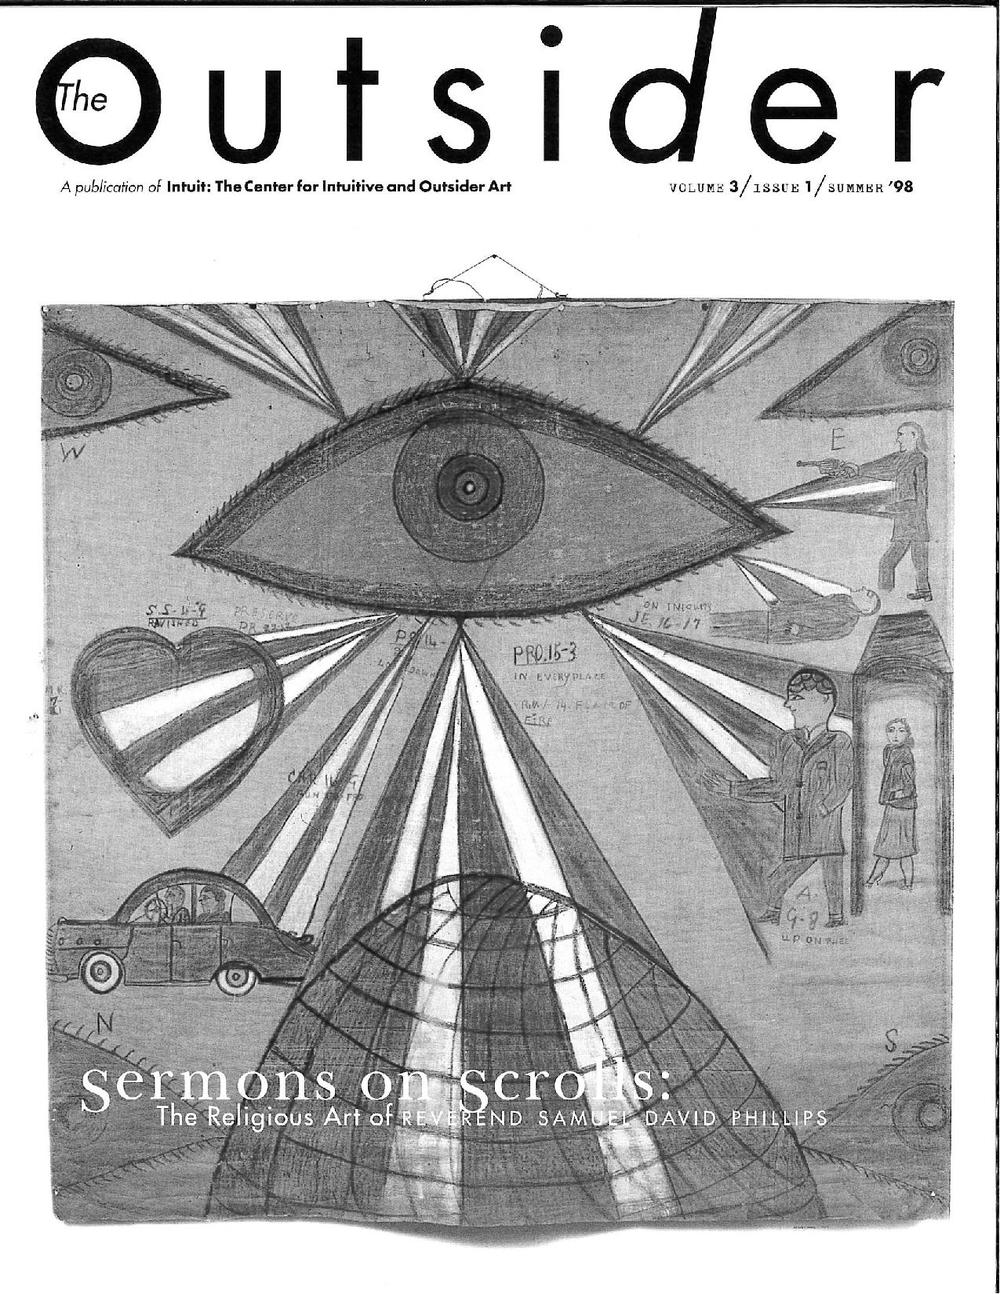 Volume 3 Issue 1 1998